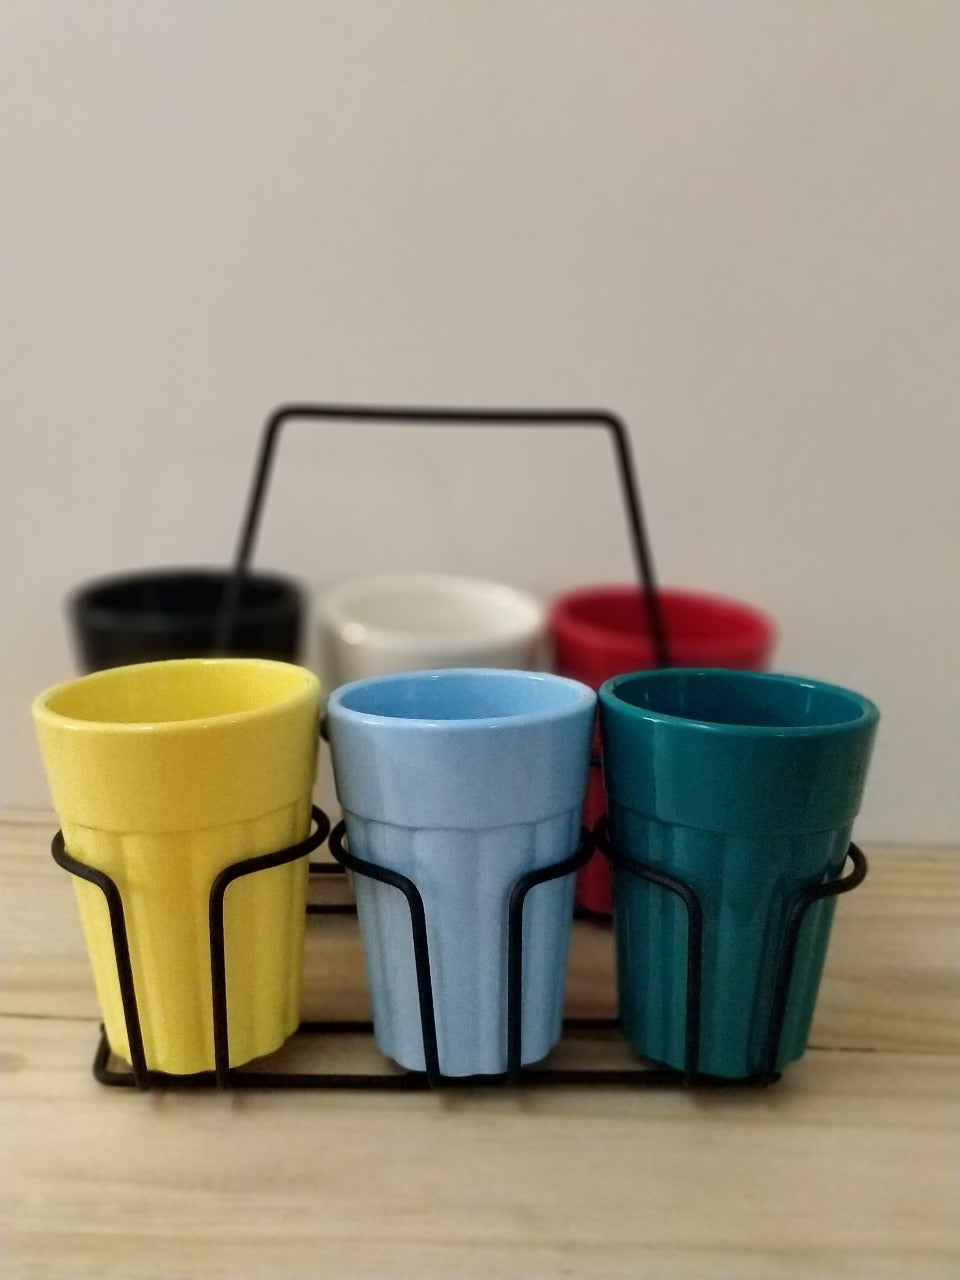 Unbreakable Cutting Chai Cups with Black Caddy (150ml, Solid Multicolor) - Set of 6